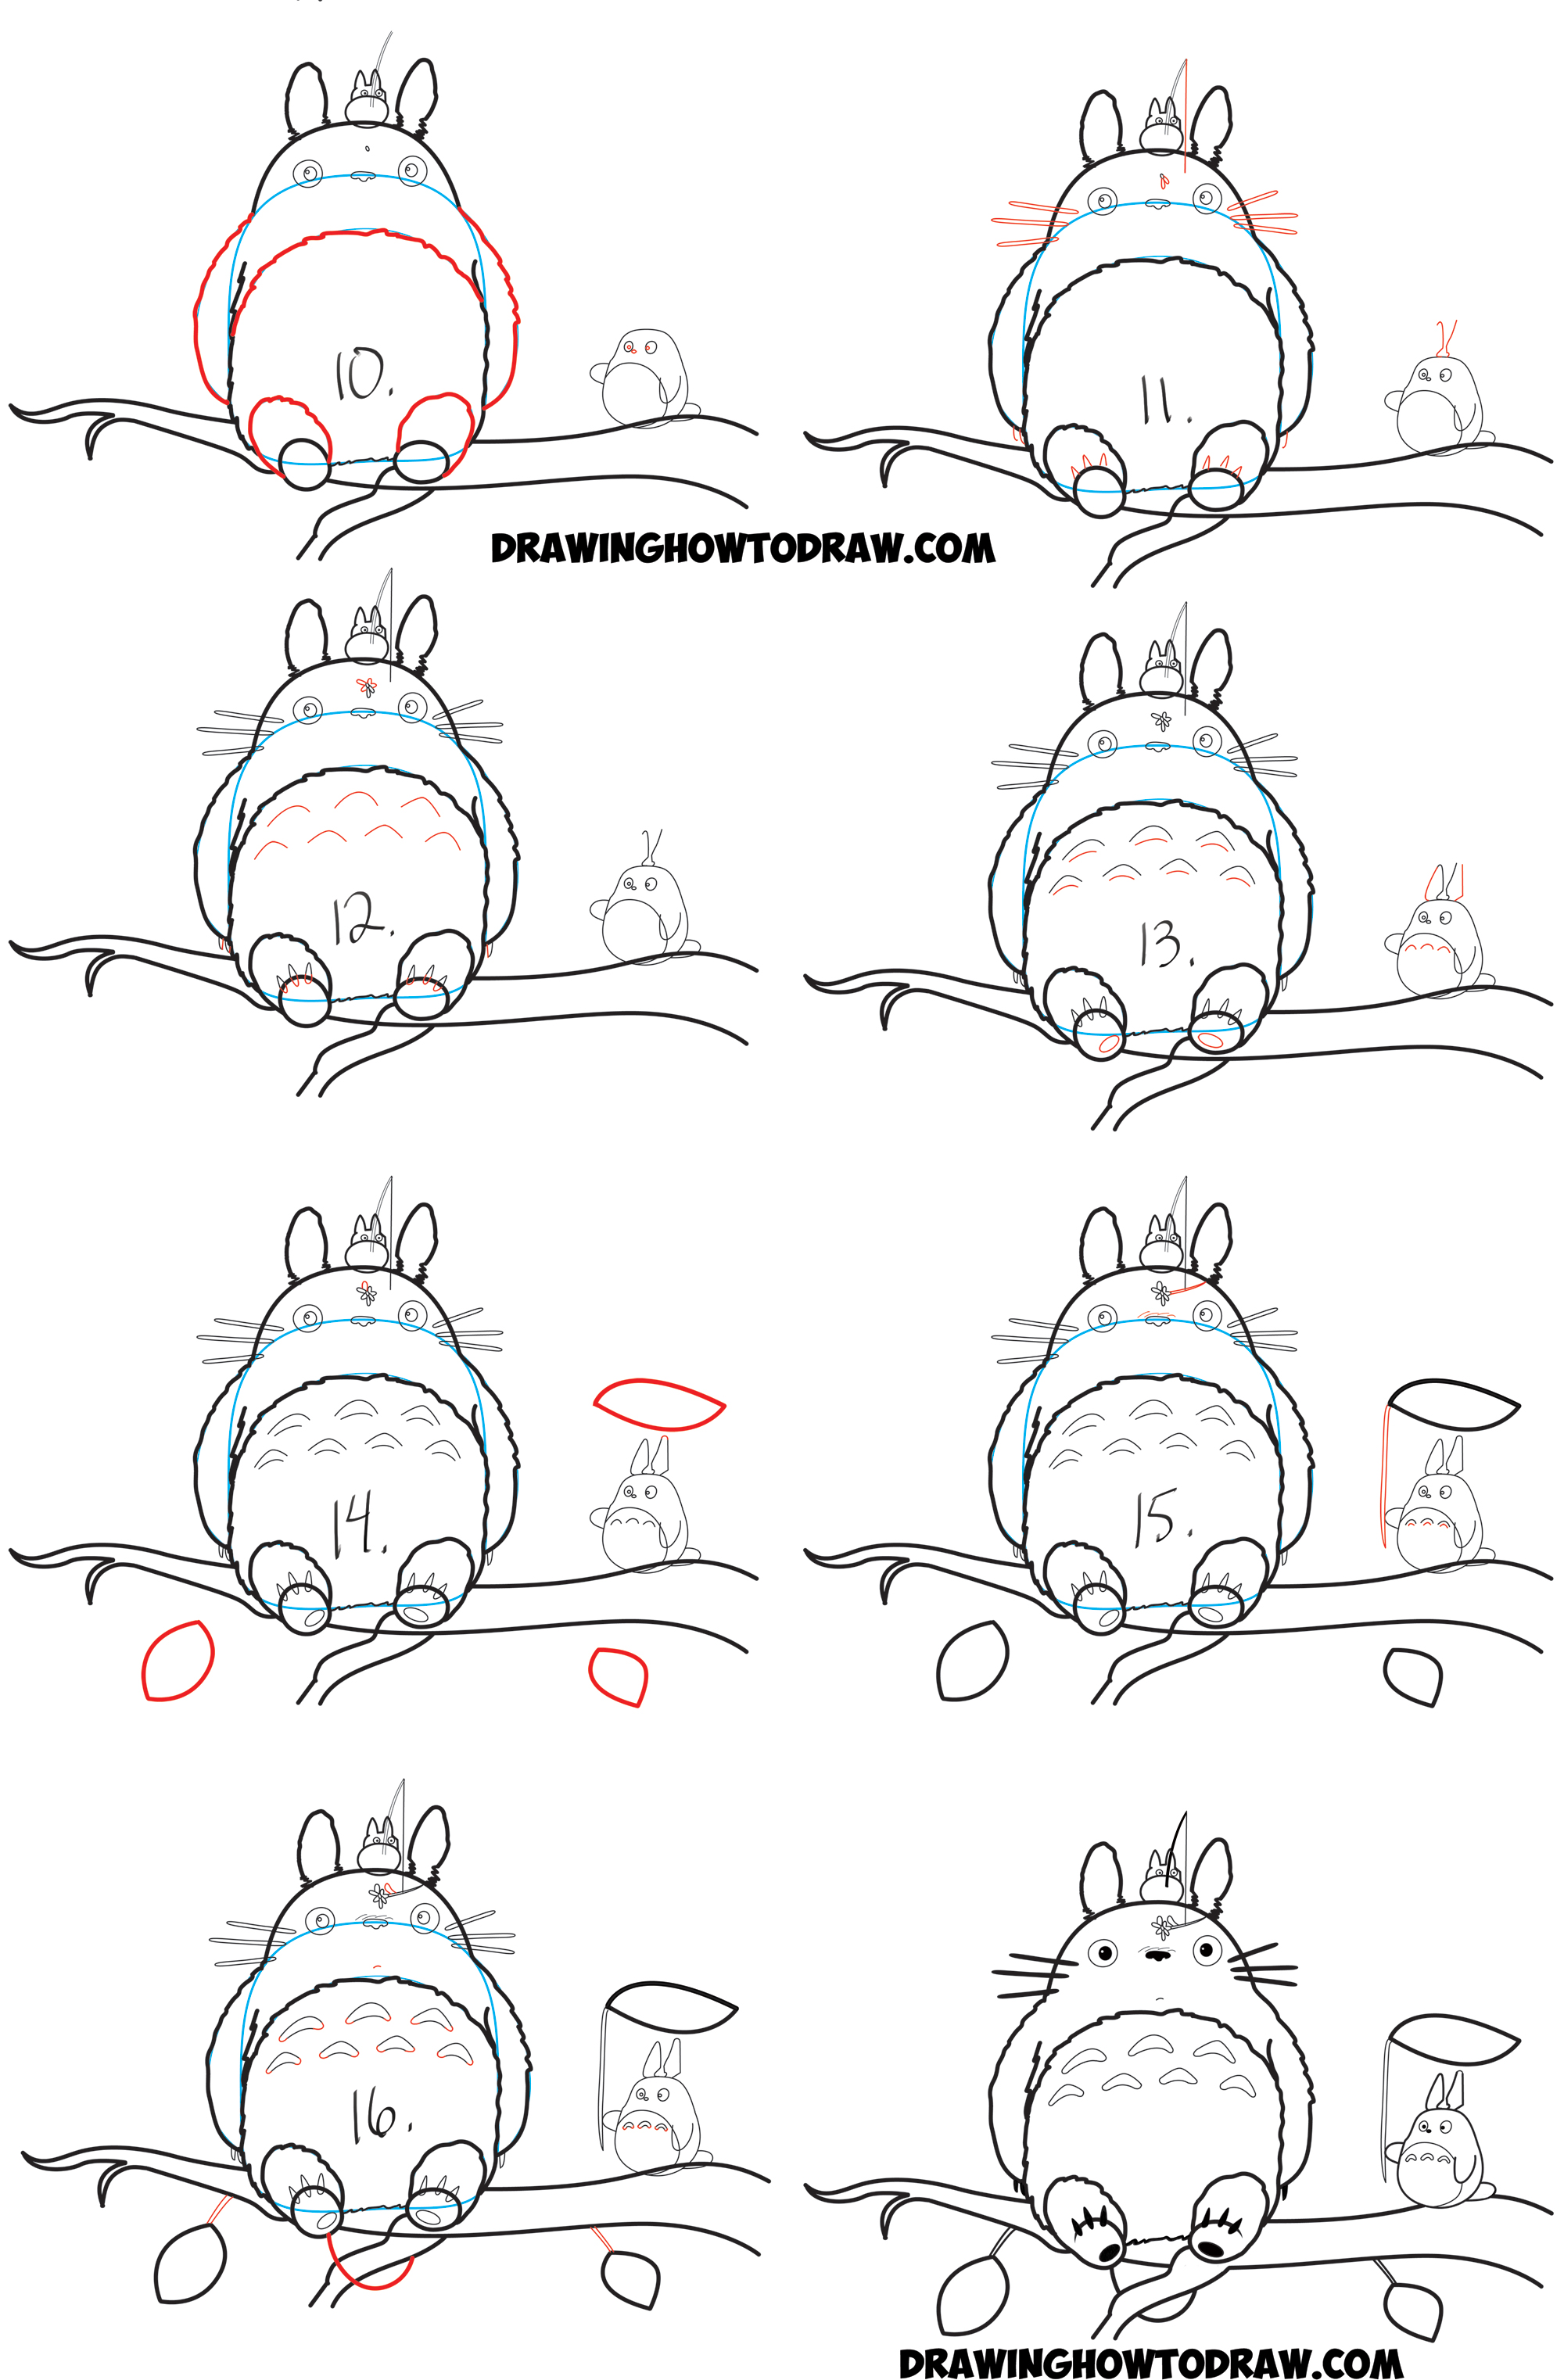 How to draw totoro from my neighbor totoro easy step by for Learn drawing online step by step